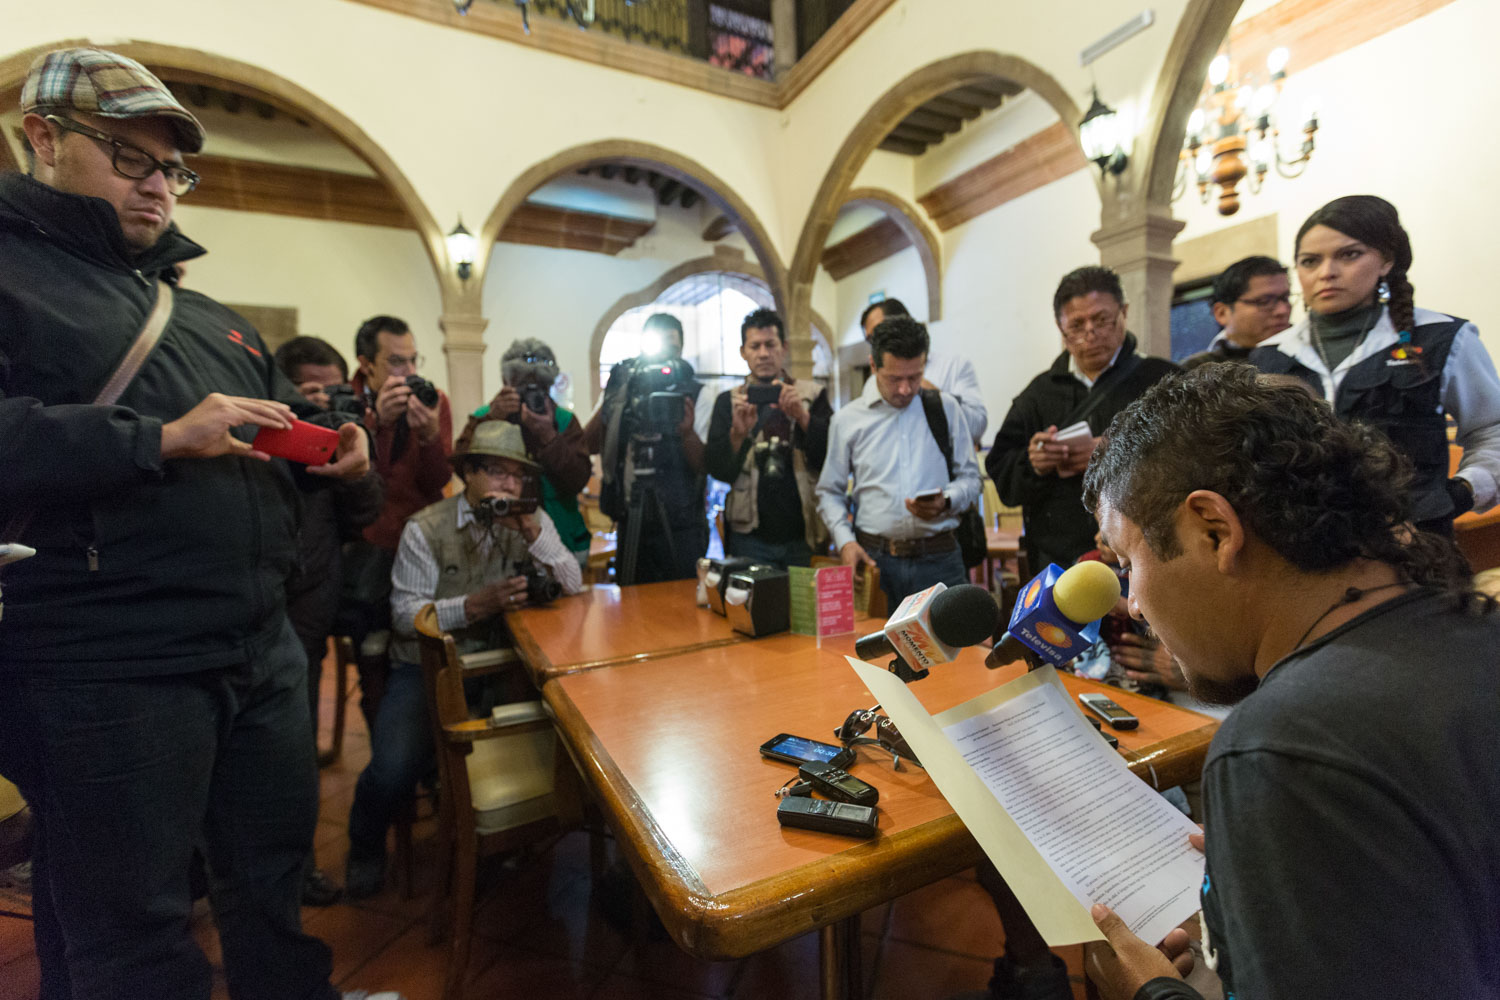 Press conference of Cesar Carrizales, alias el Mijis, some days before starting a bike project in Mexico to defend the rights of youth of neighborhoods.